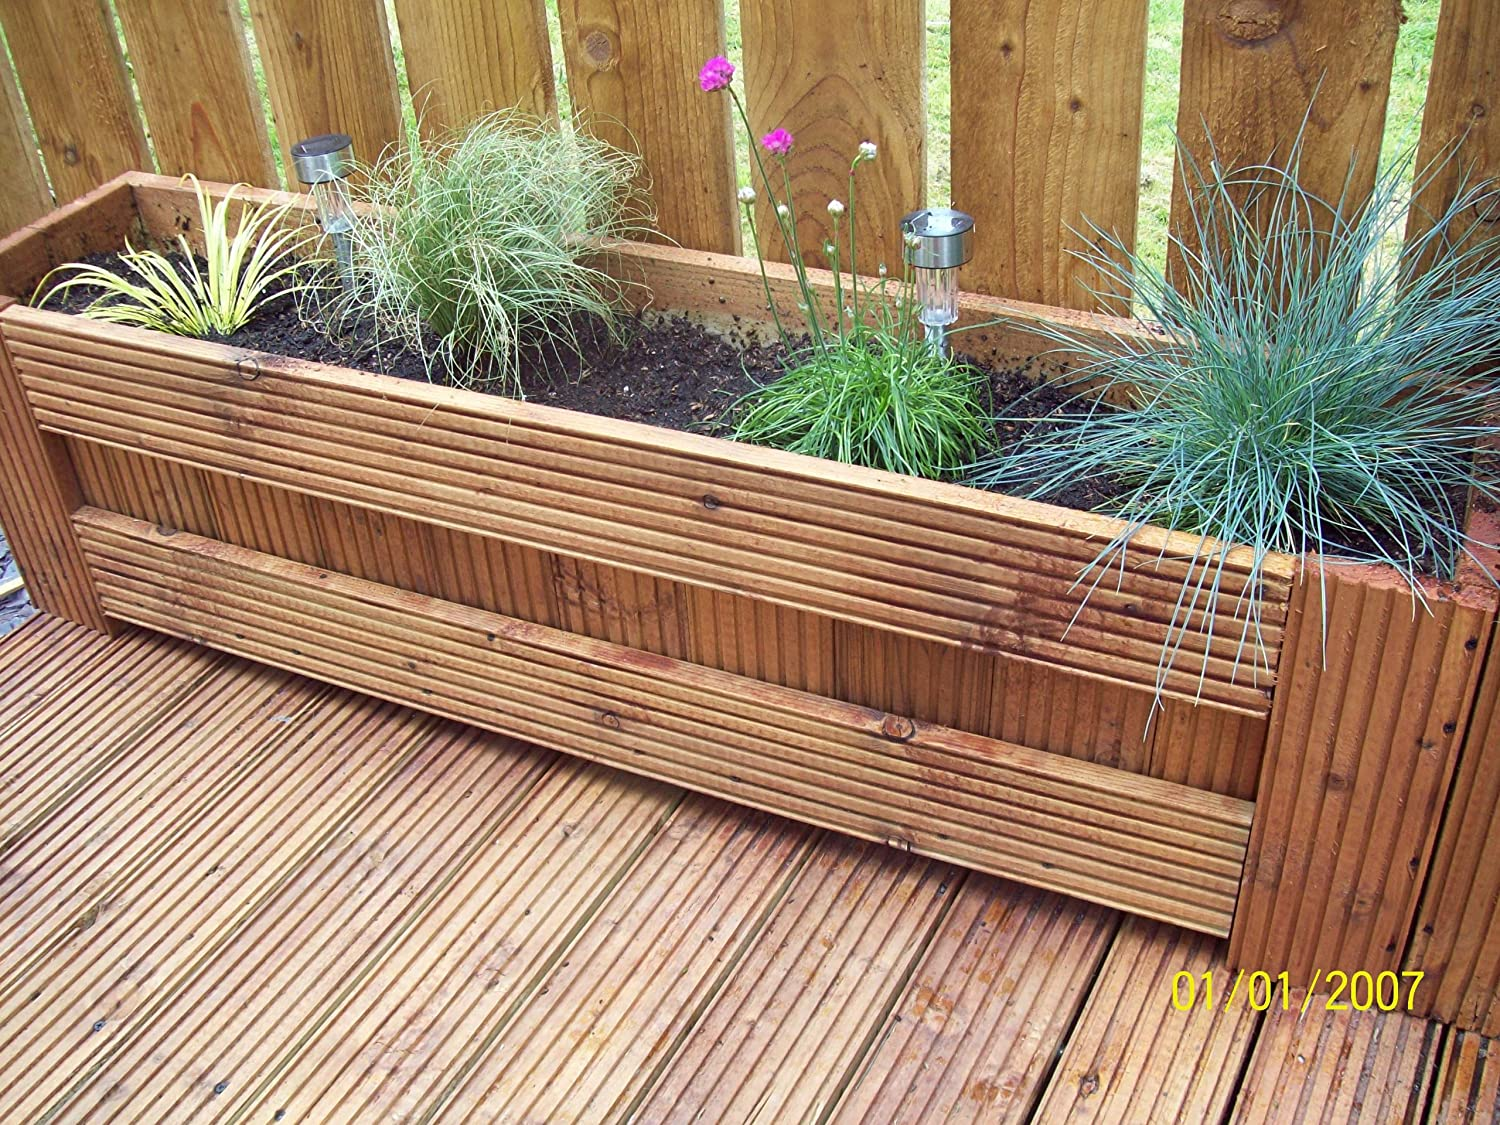 wooden decking trough planter boswel style ready assembled Amazon uk Garden & Outdoors